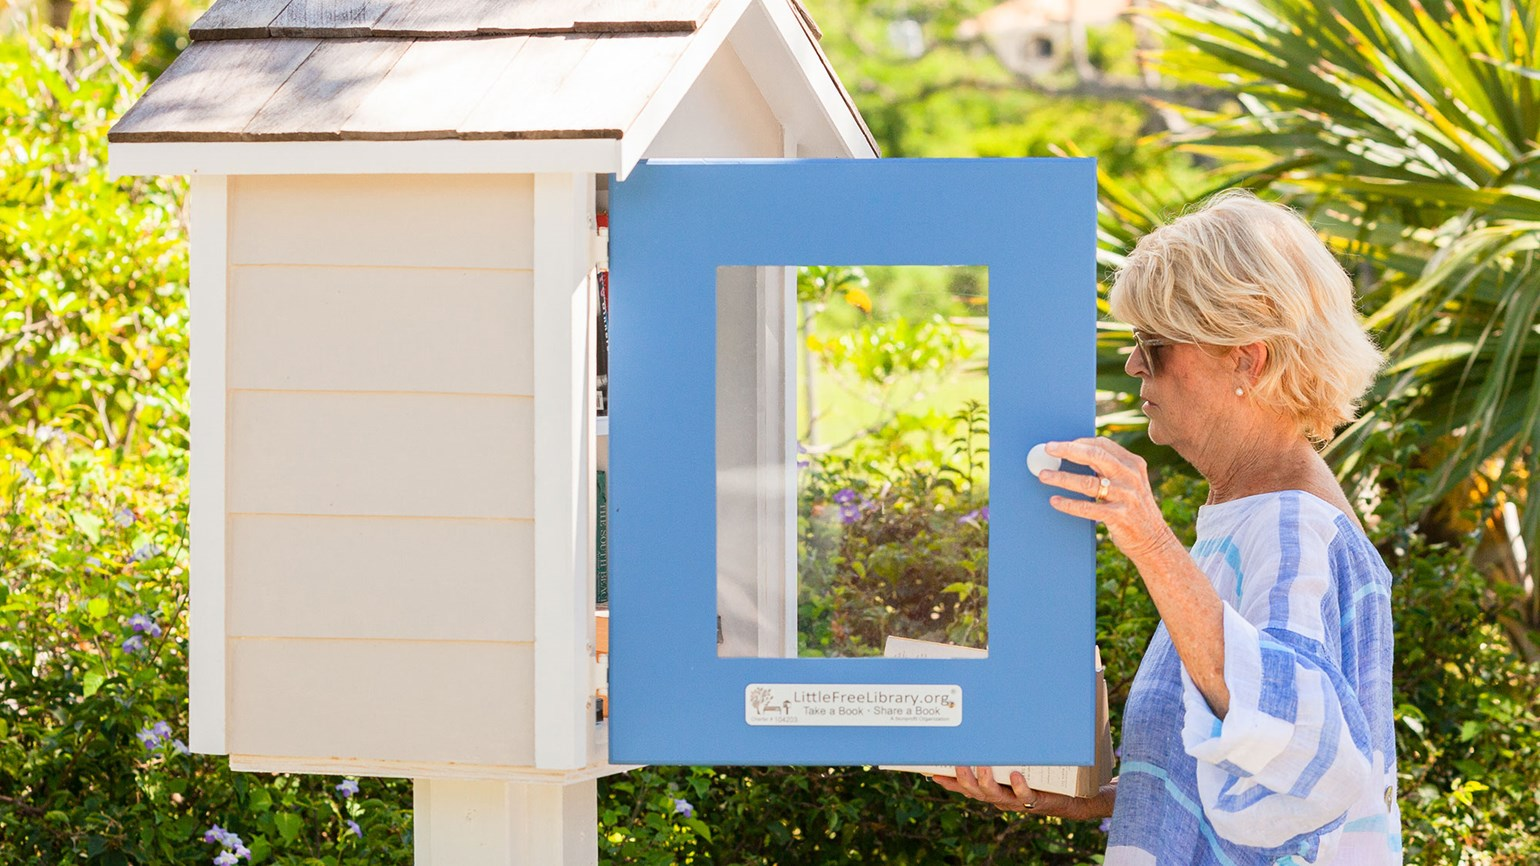 Nevis offers Little Free Libraries for visitors and residents